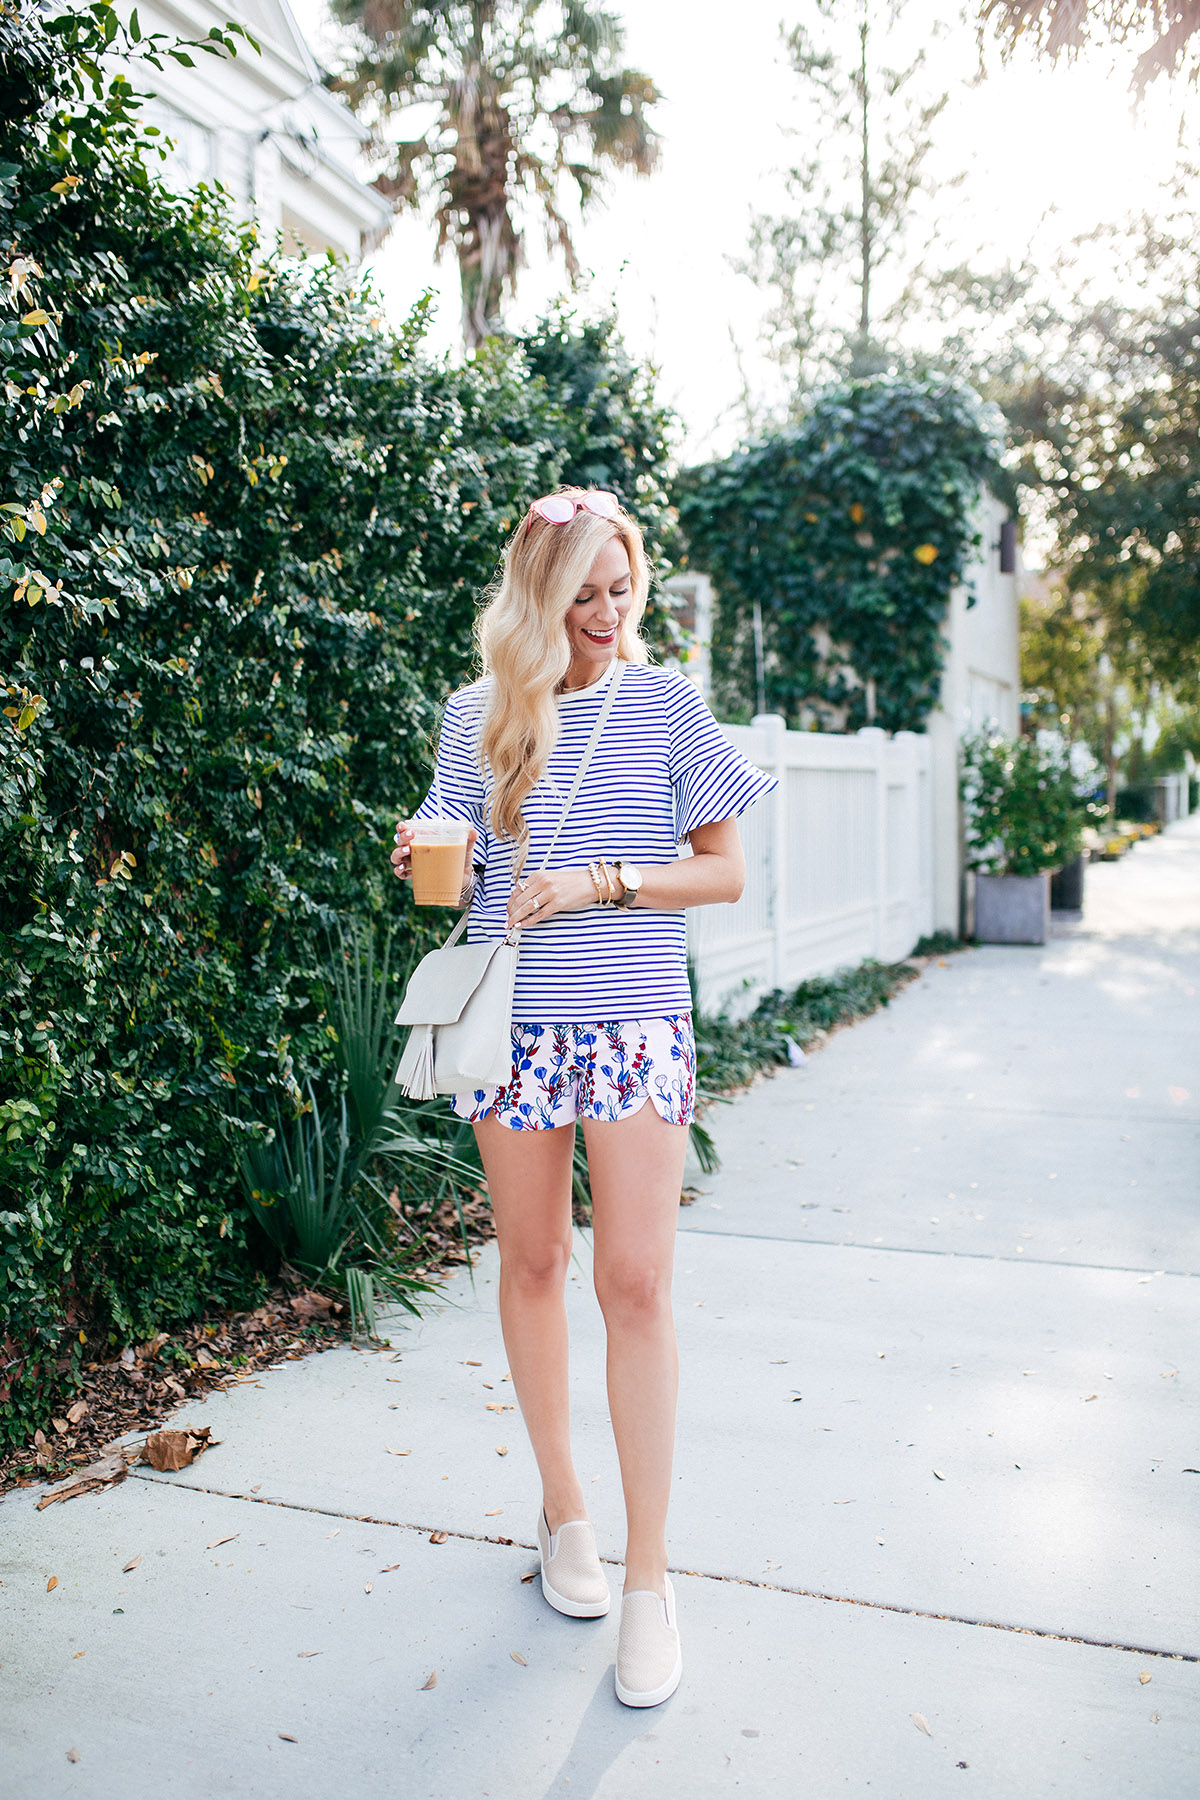 How to Mix Stripes and Floral Print for Spring | Spring Outfit Ideas | apinchoflovely.com